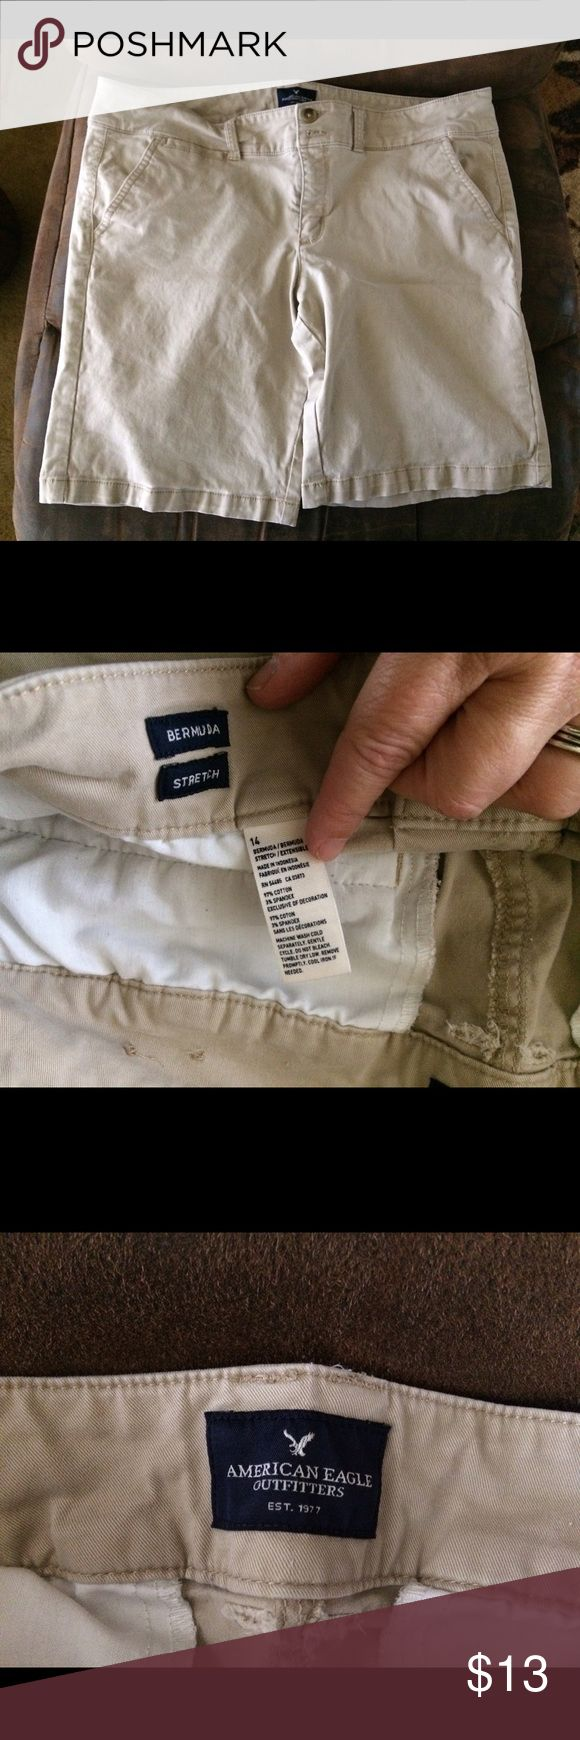 American Eagle Bermuda Stretch shorts 14 These are in excellent condition. They are flat front Bermuda stretch shorts. Pockets in the front and back. Size 14 American Eagle Outfitters Shorts Bermudas